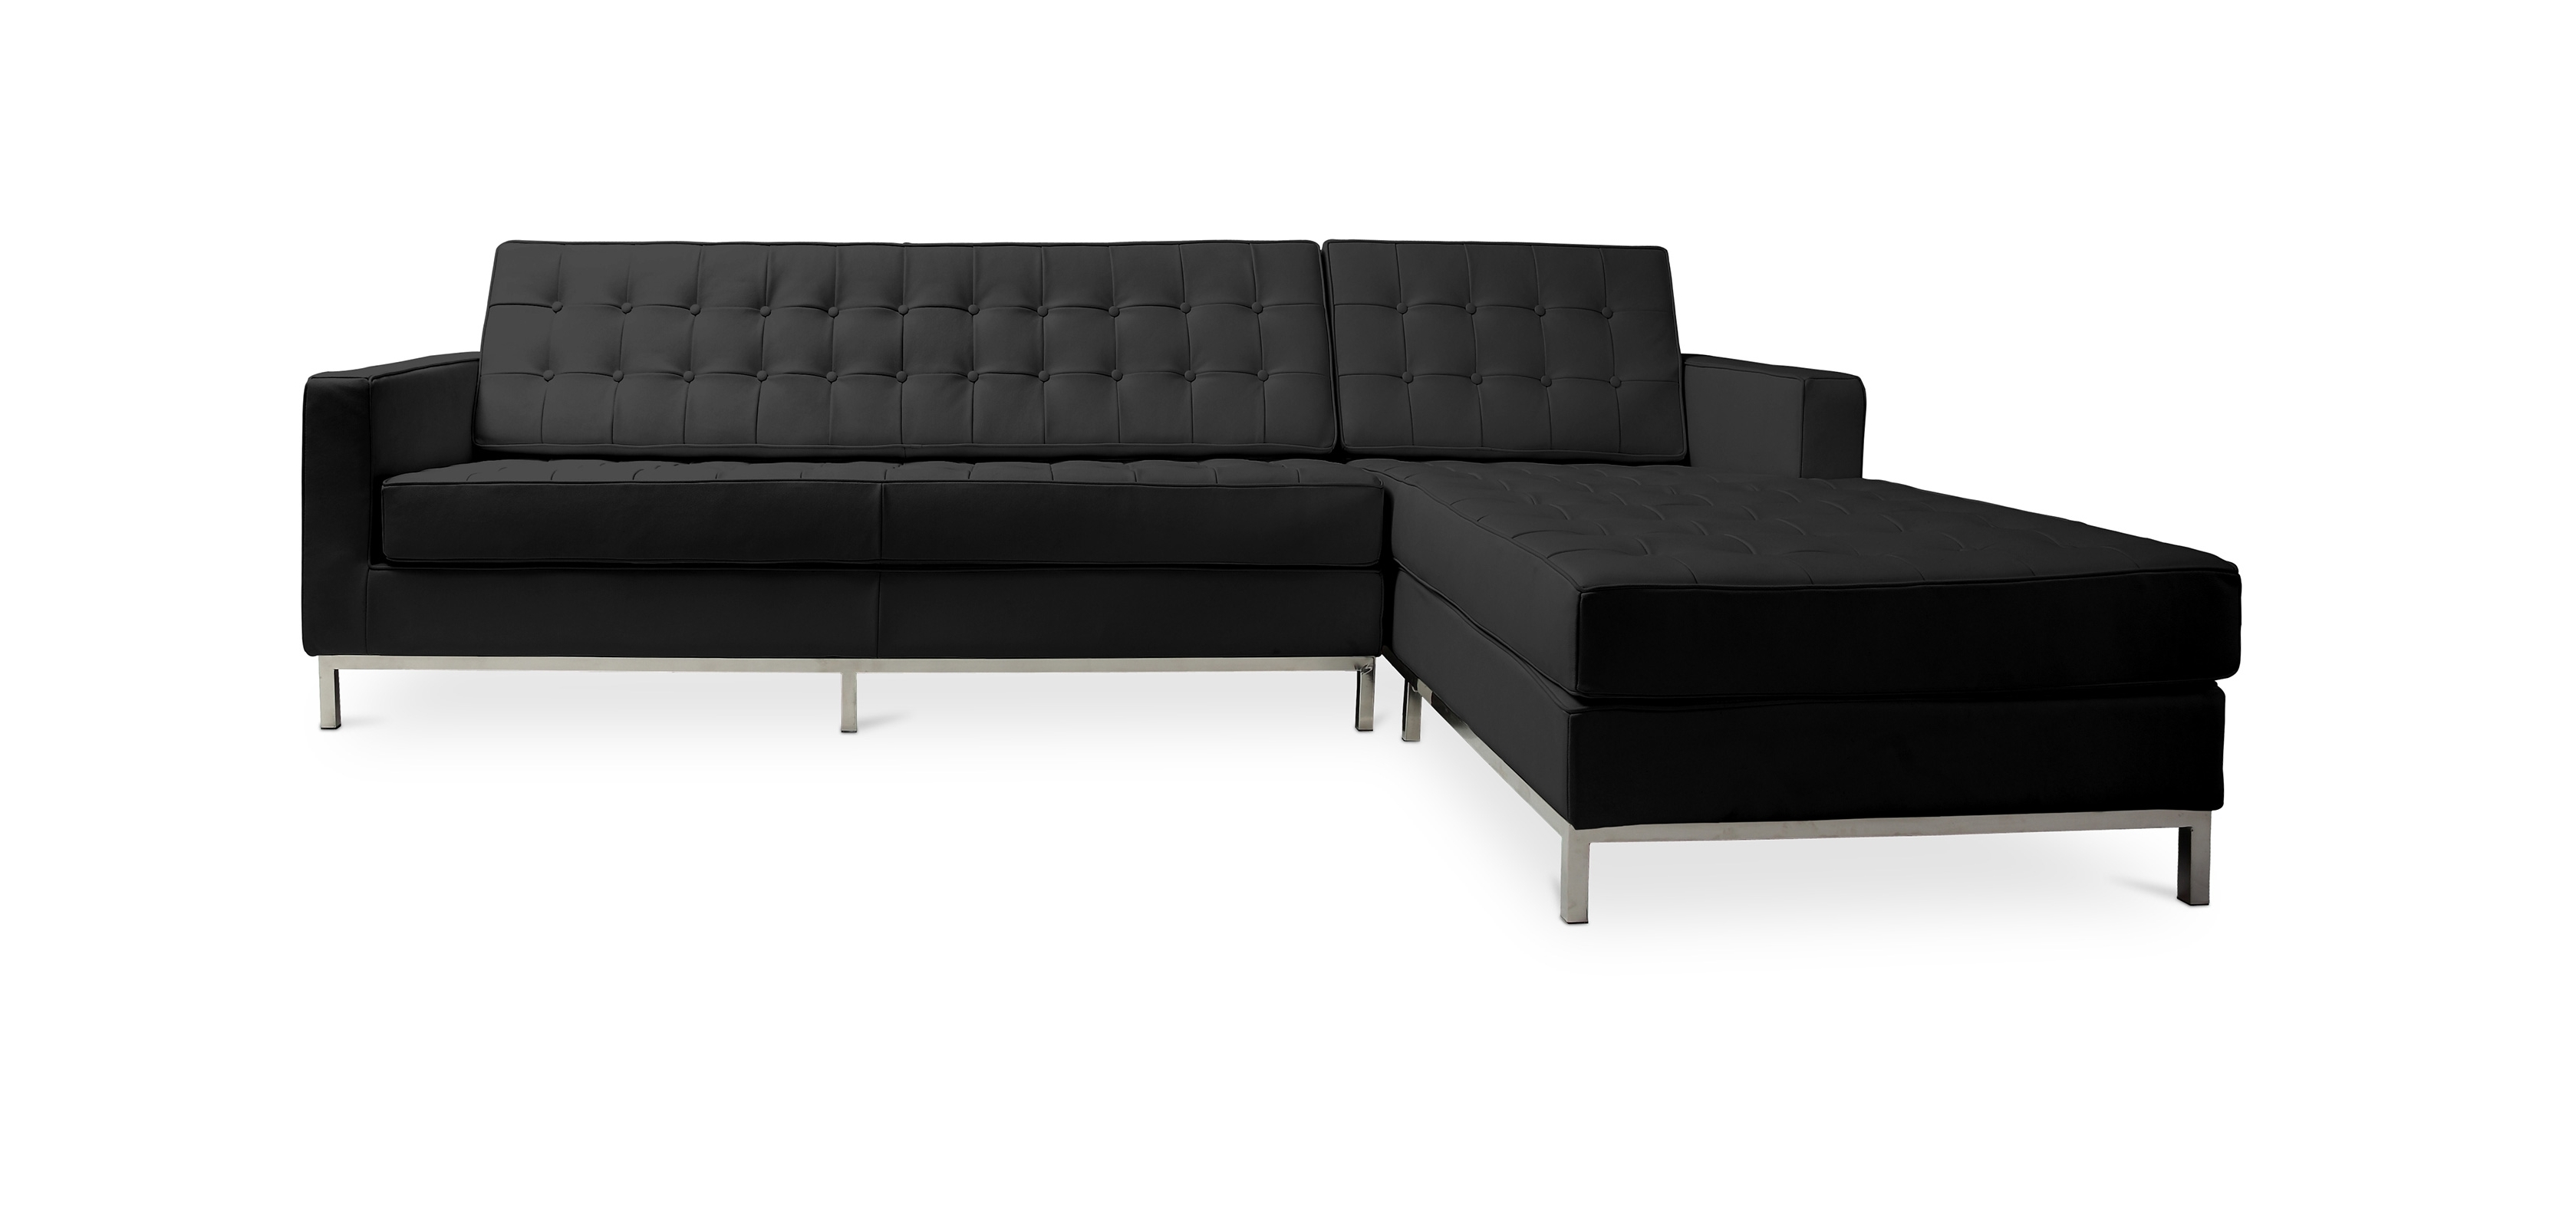 Design Corner Sofa Florence Knoll Style – Left Angle – Premium Within Most Up To Date Florence Large Sofas (Gallery 13 of 20)